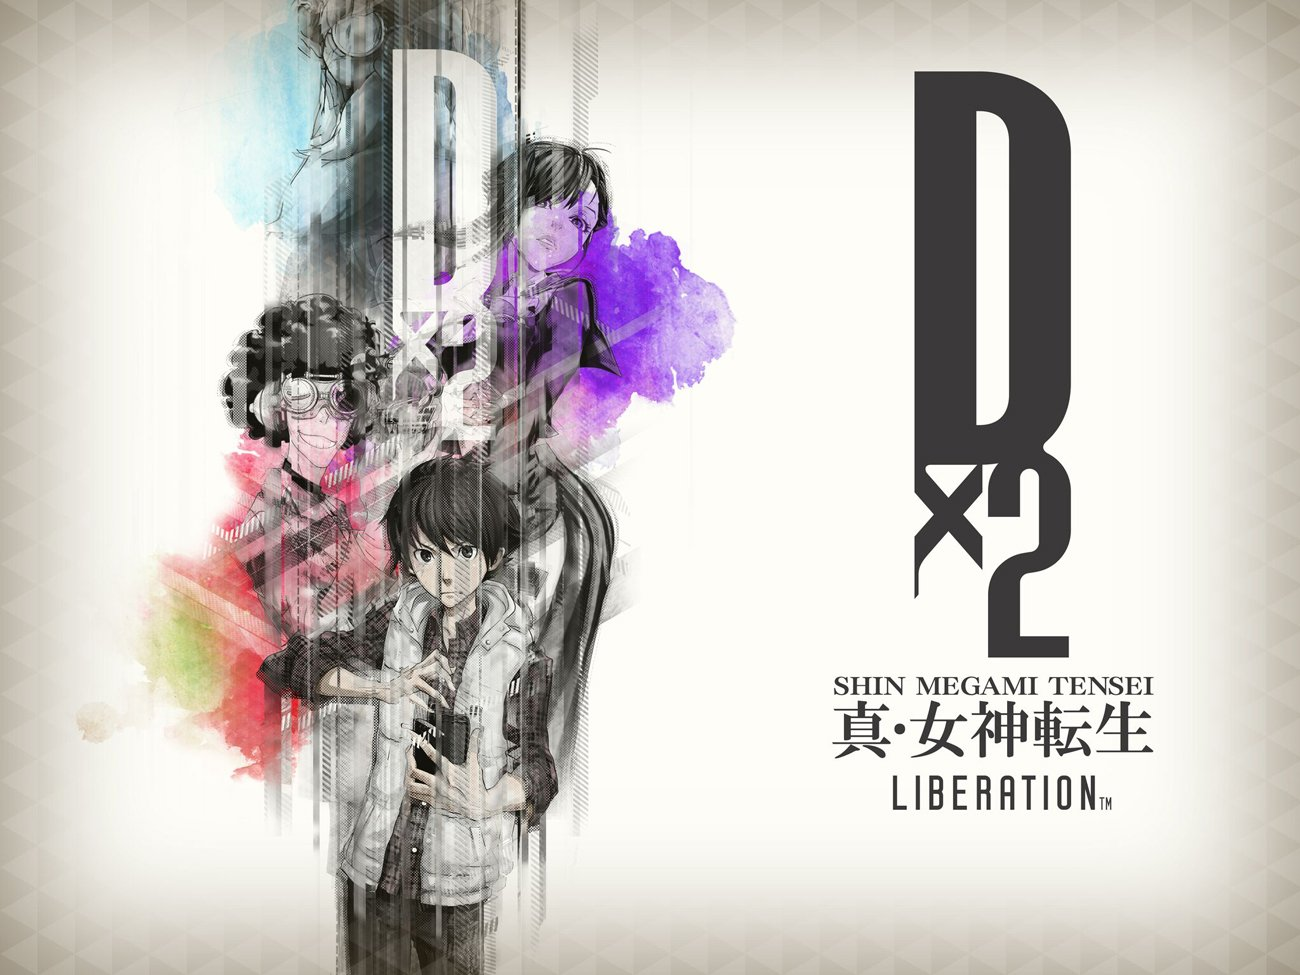 Shin Megami Tensei Liberation Dx2 wants to be the complete console experience, but on smartphones screenshot